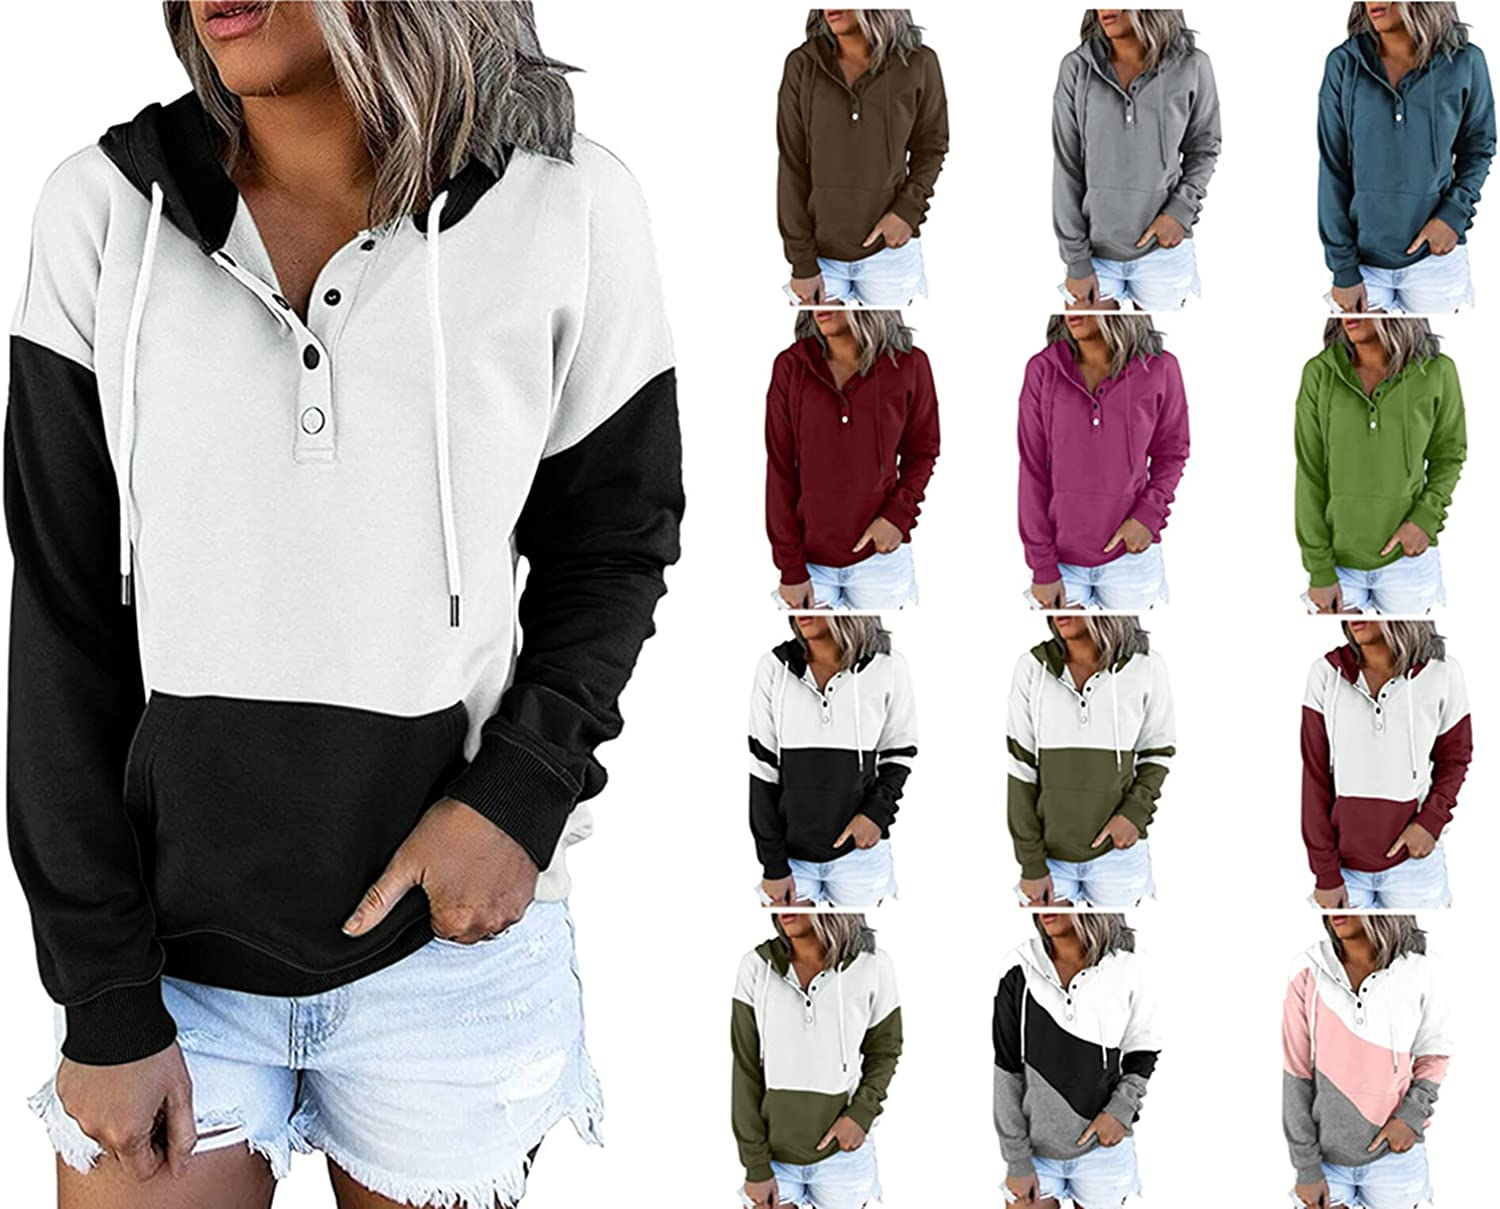 Women's Button Down Long Sleeve V-Neck Pullover Hoodies Tops Comfortable Blouse